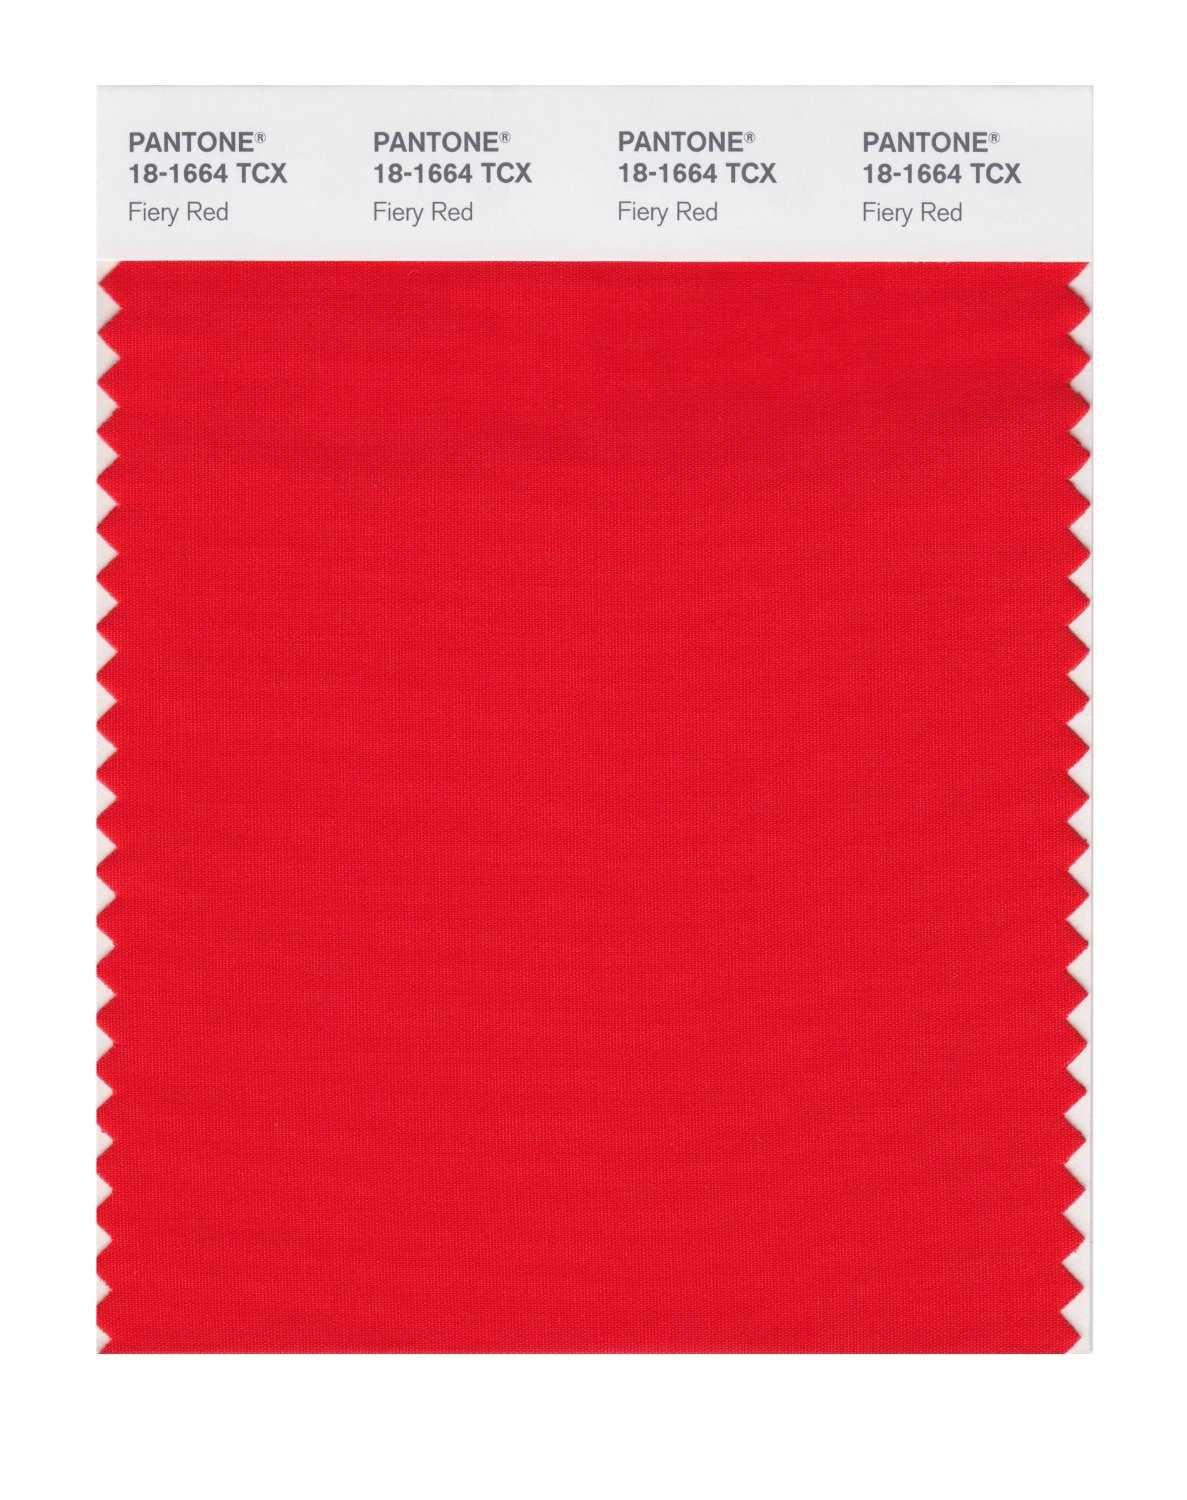 Pantone Smart Swatch 18-1664 Fiery Red